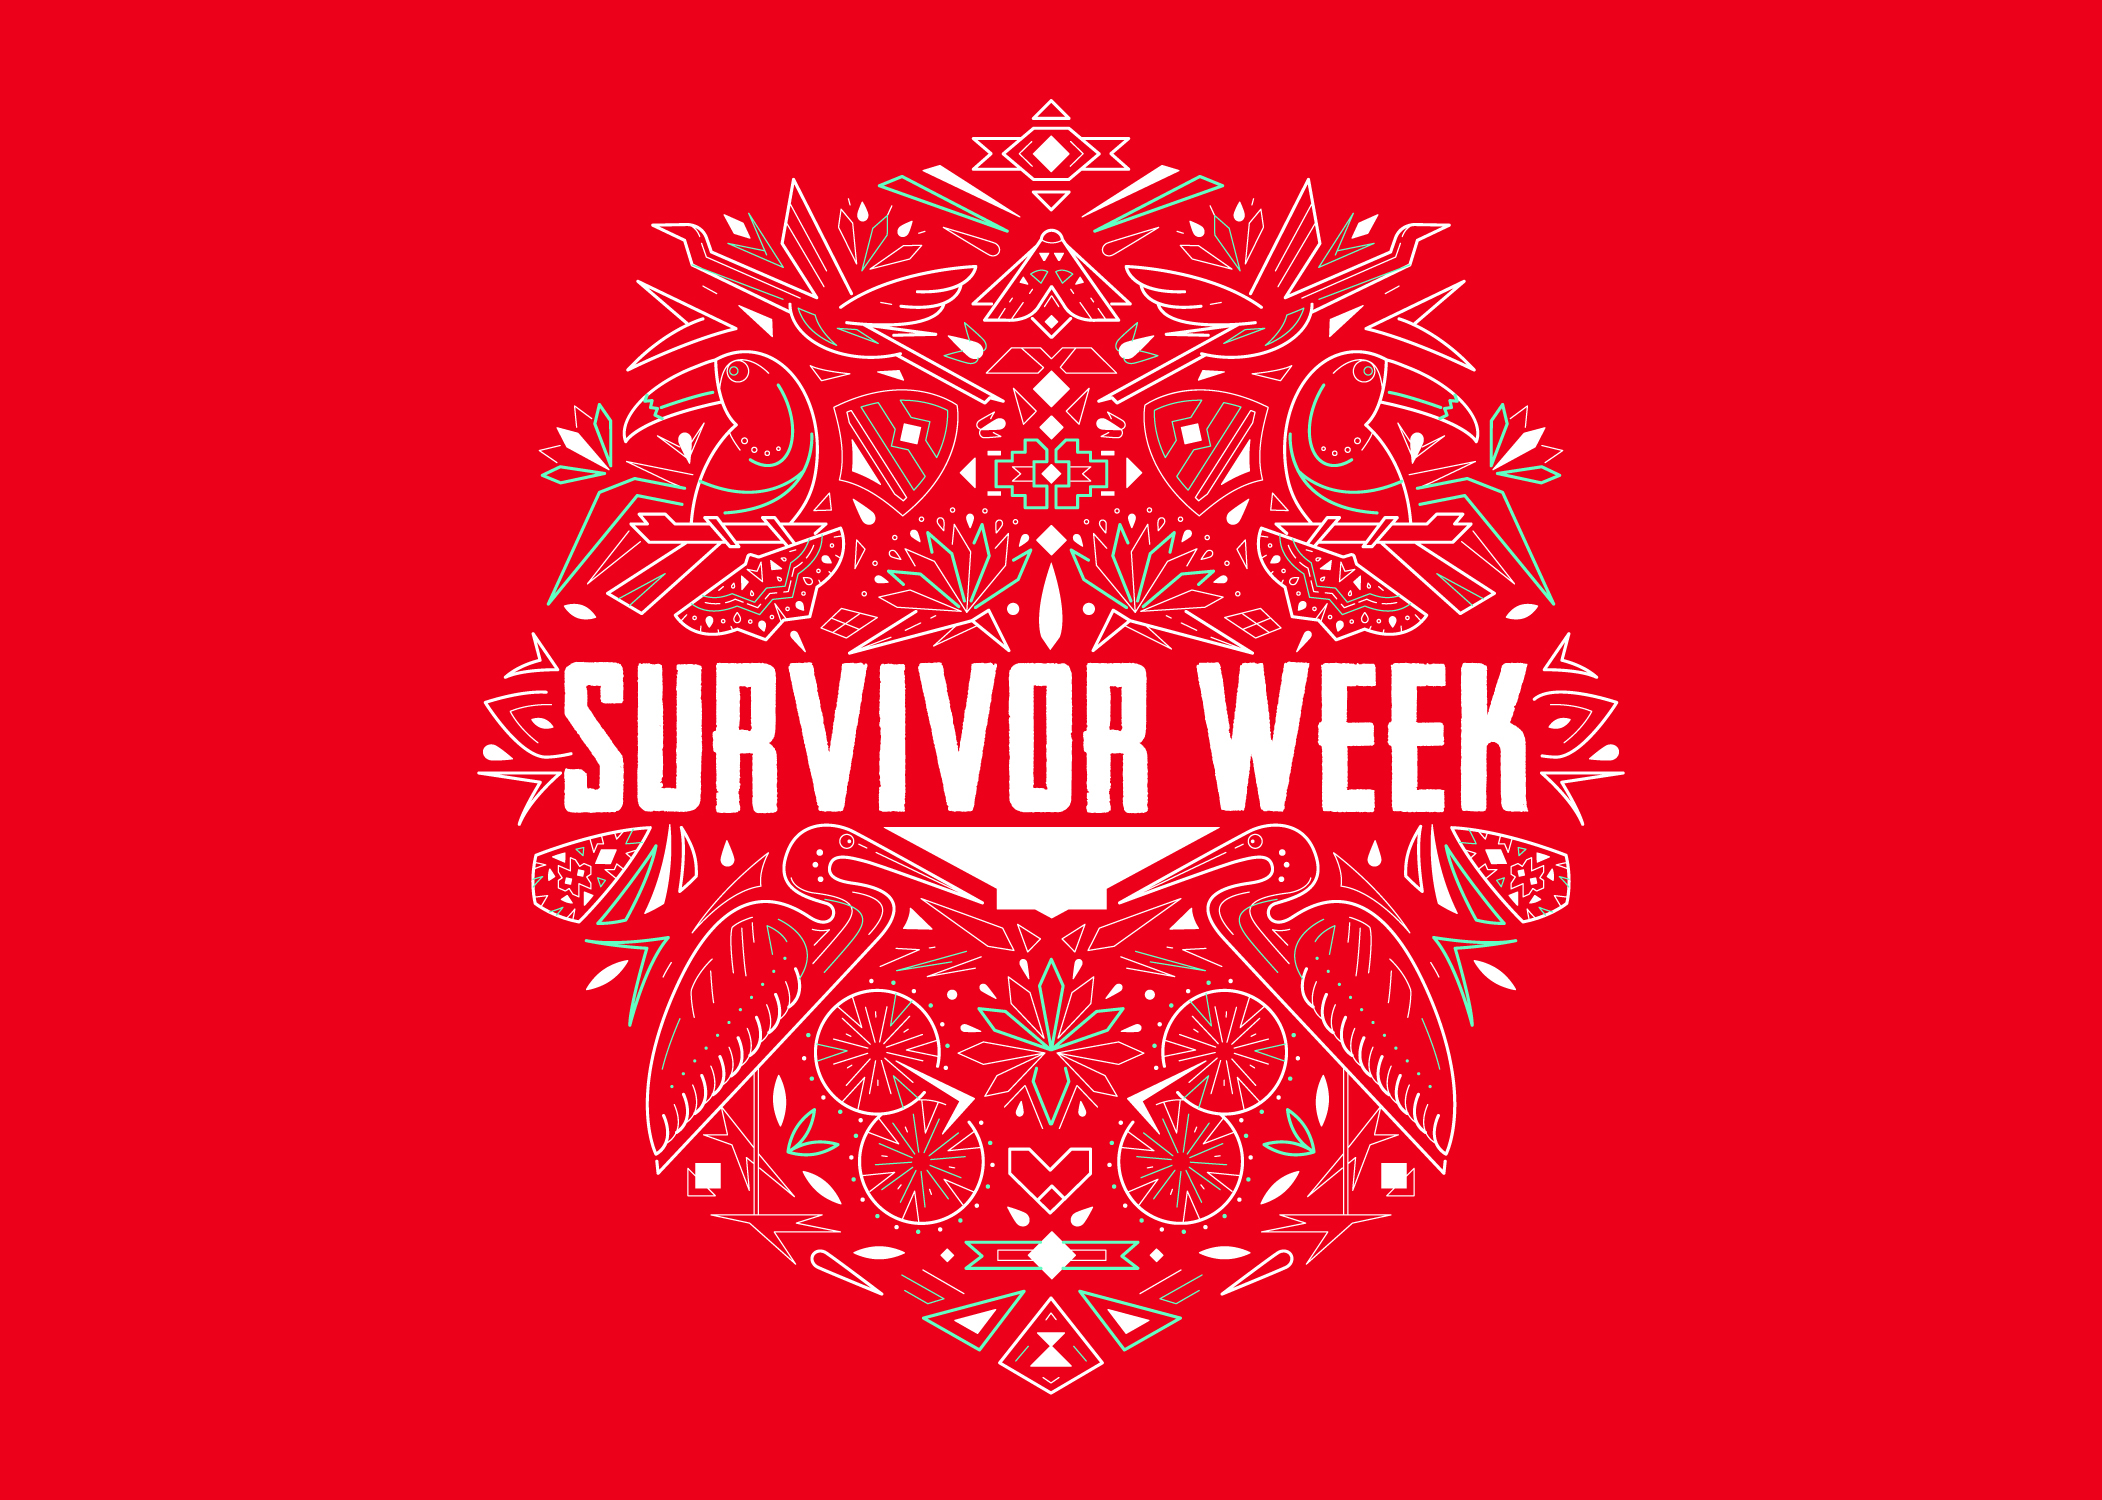 Survivorweek final